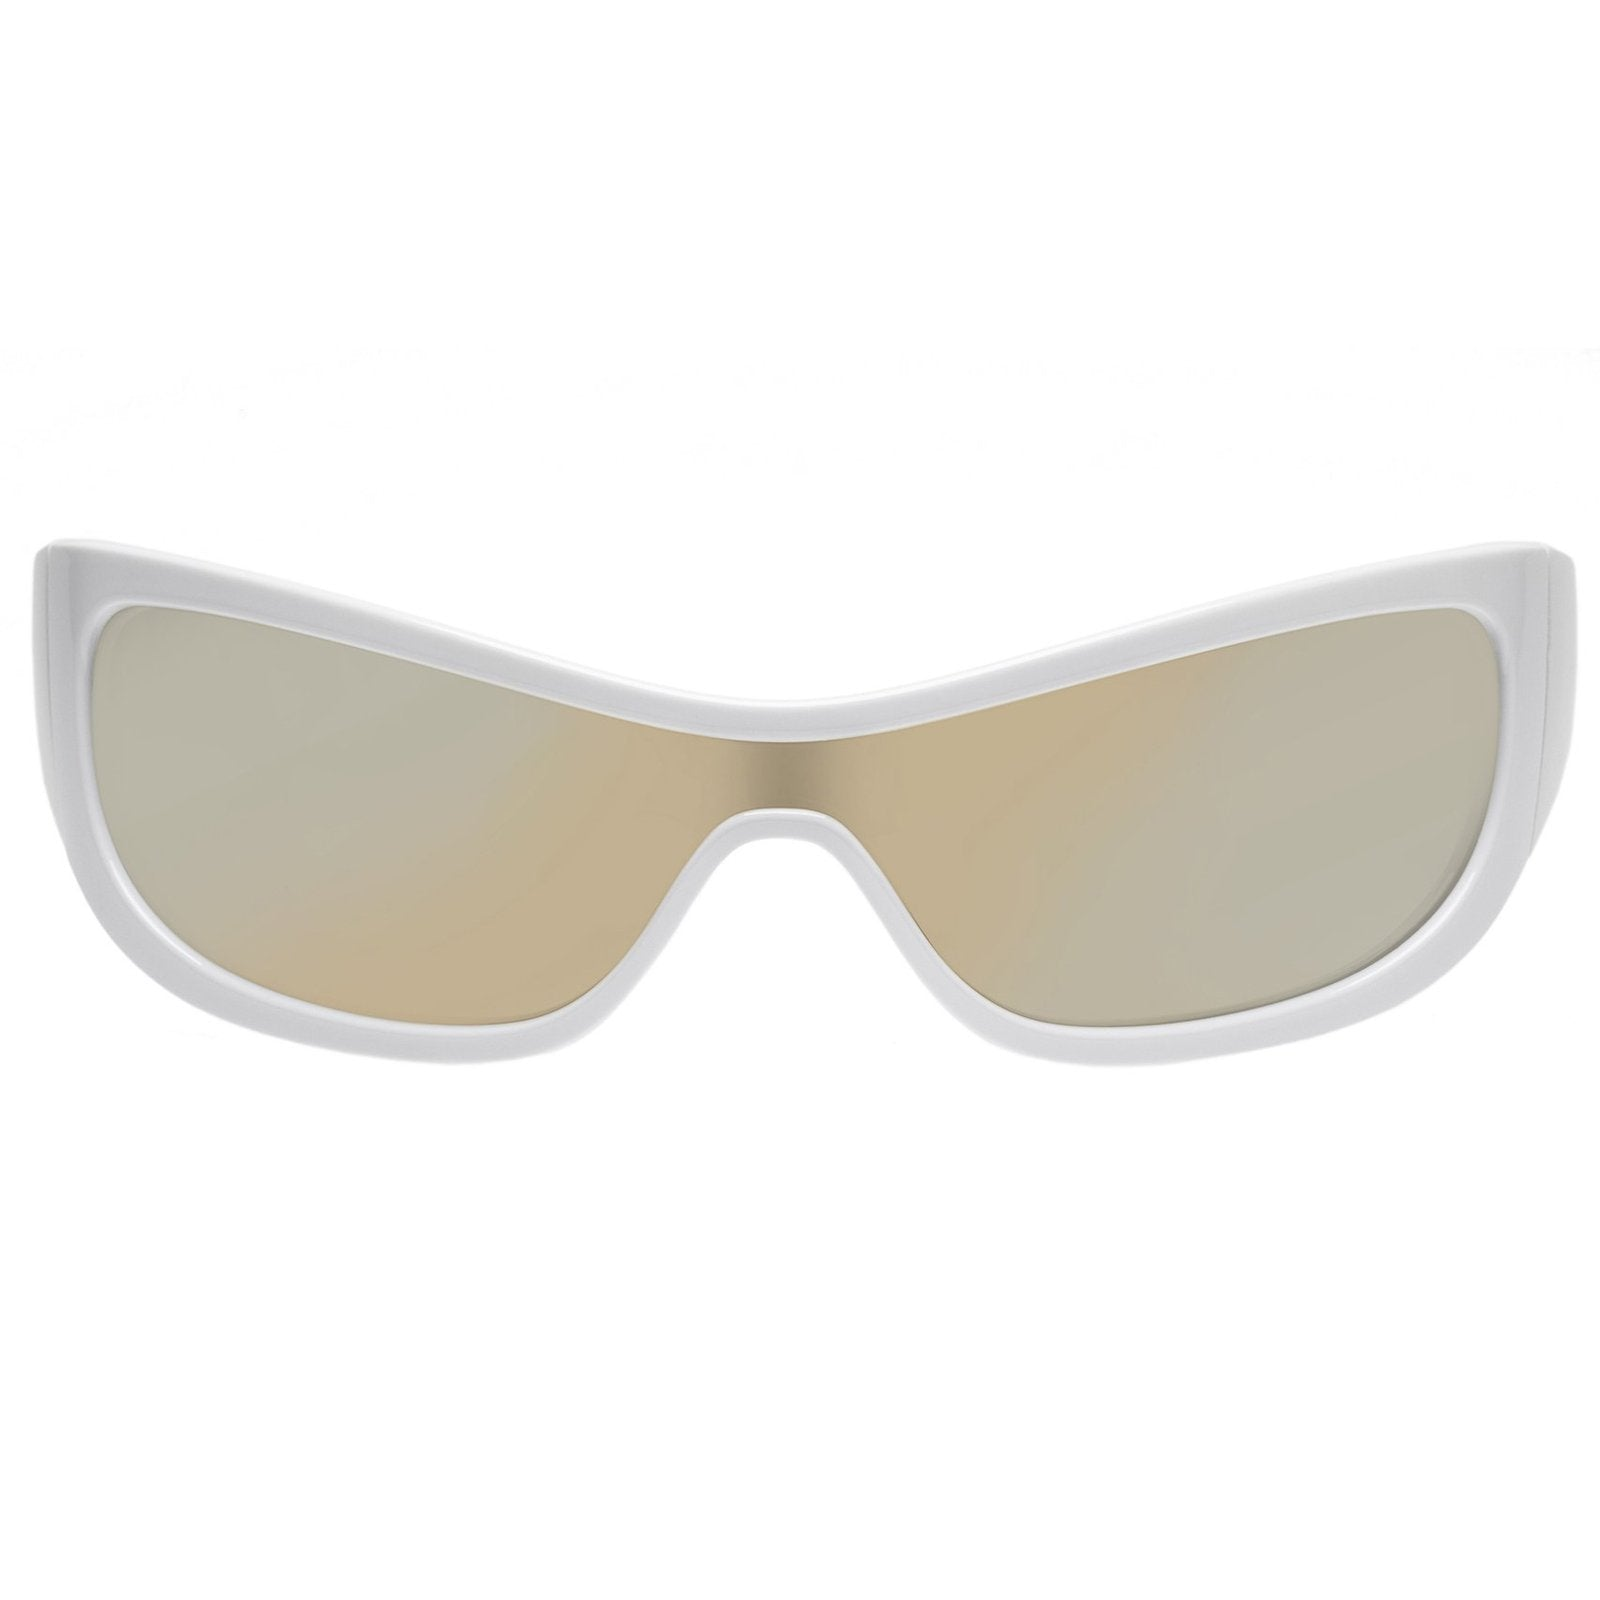 ADAM SELMAN X LE SPECS  / THE MONSTER / WHITE